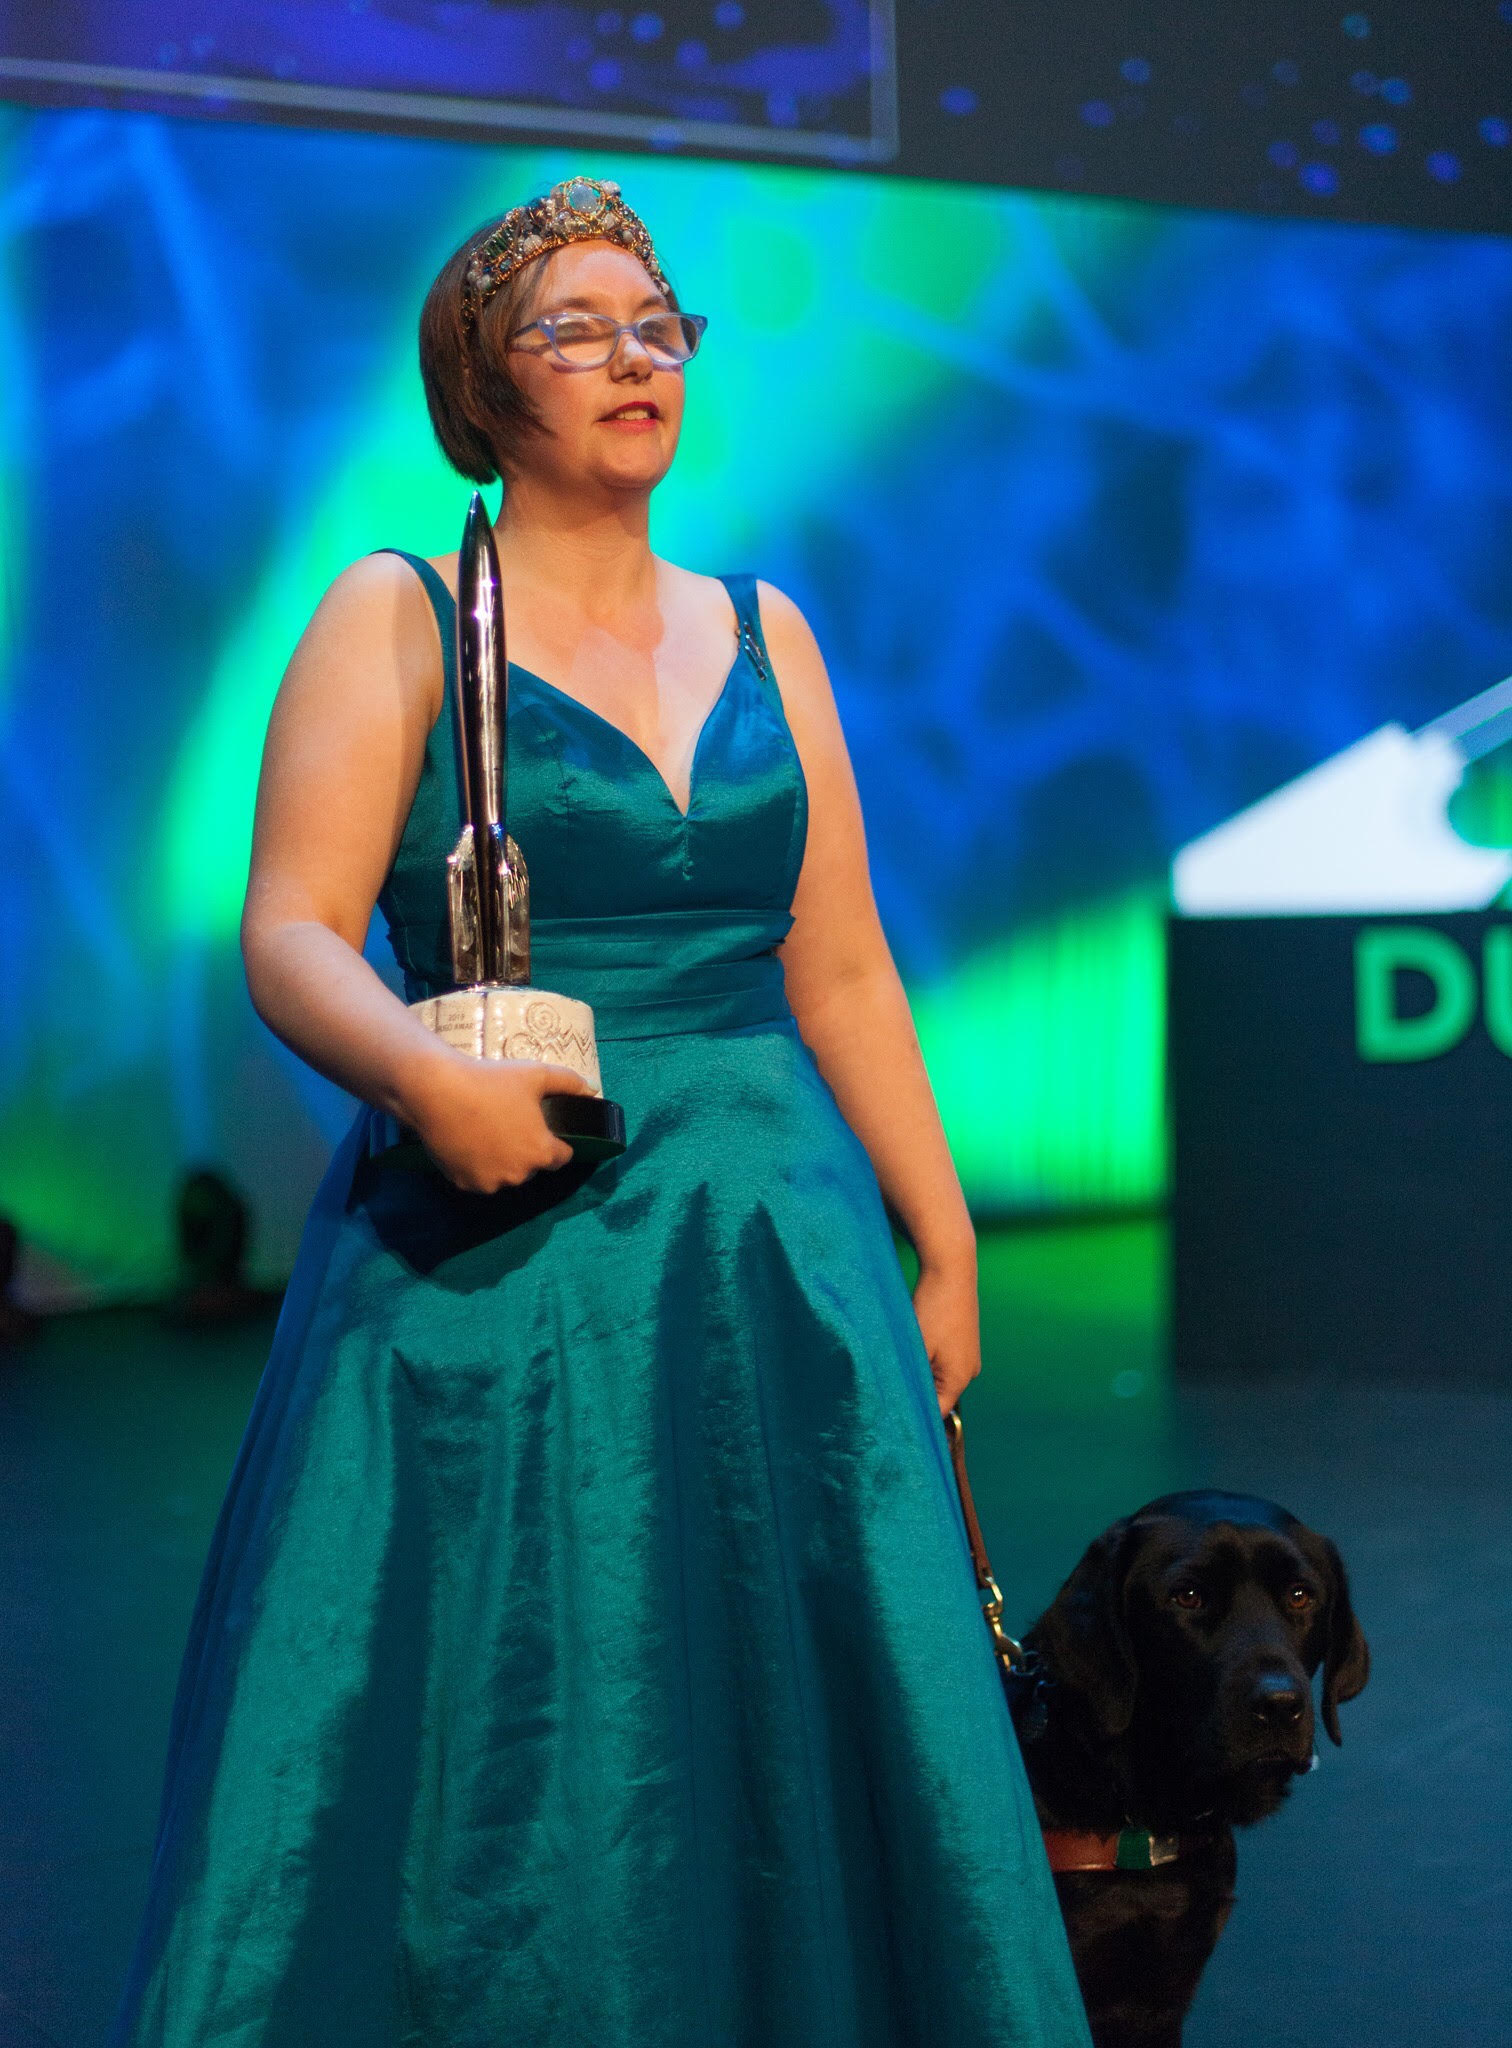 Elsa stands in a teal gown, holding a Hugo Award in the crook of her right arm, and a leash attached to a black Labrador in the left hand. Phjoto by Simon Bubb. Photo used with permission from Simon.